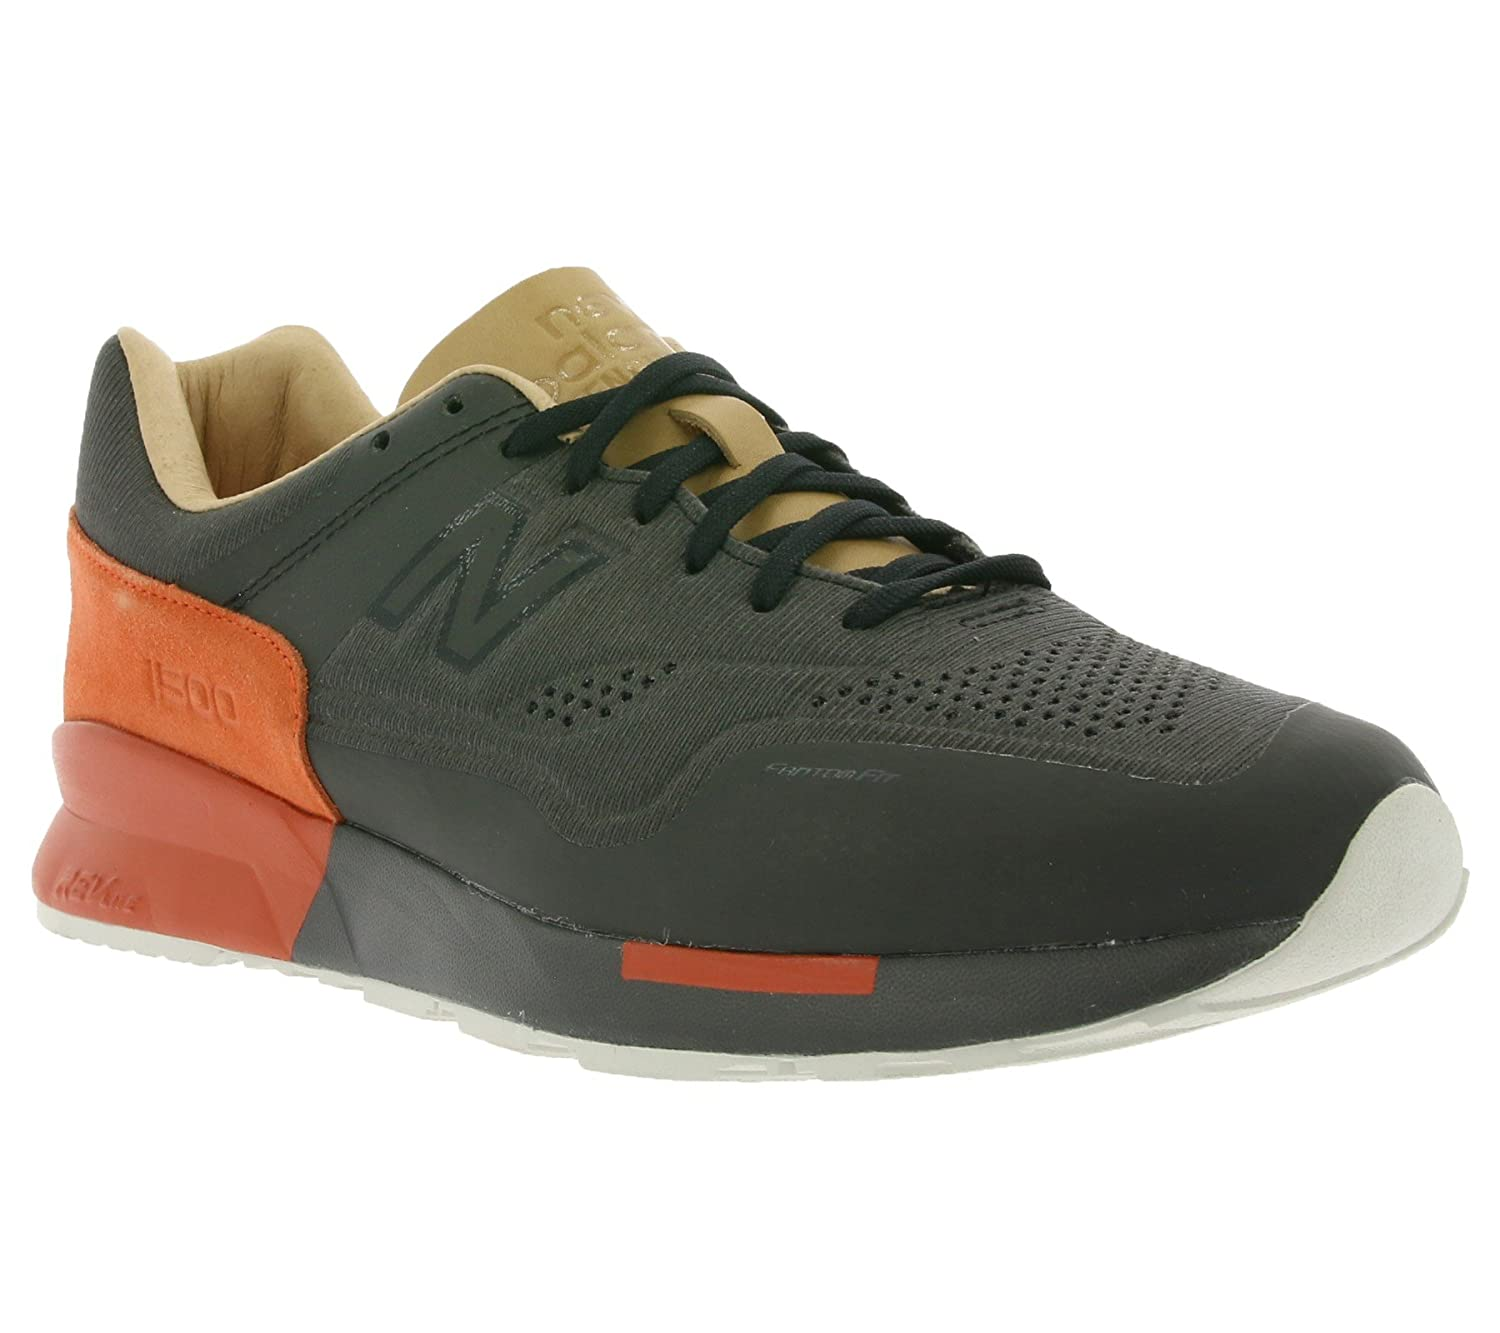 save off e0633 dbeb7 New Balance 1500 reengineered Mens Trainers Black MD1500FB ...